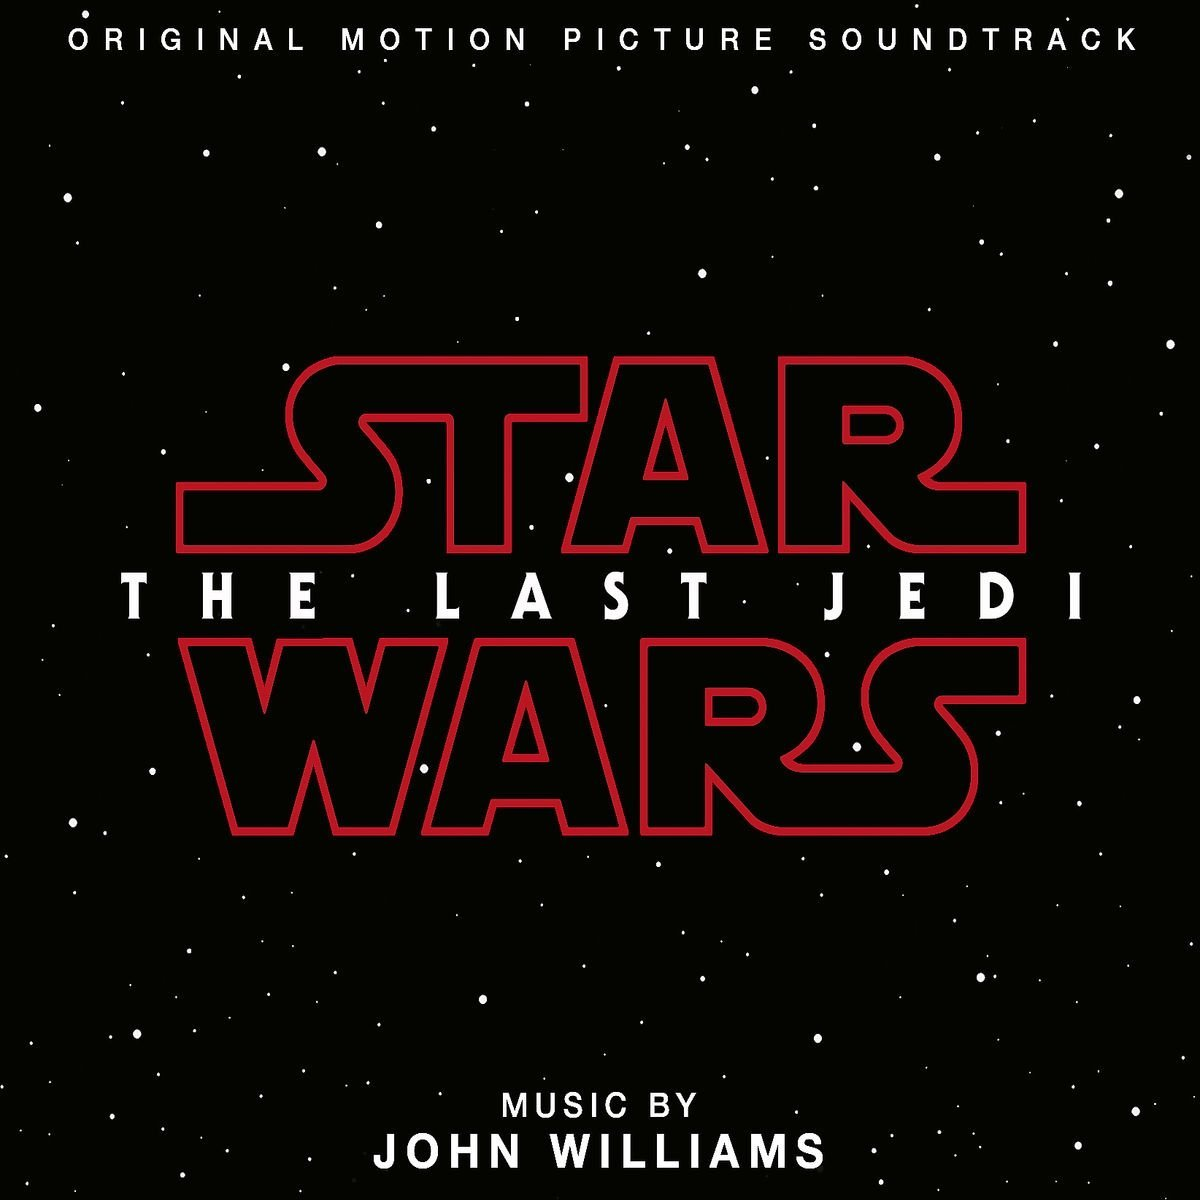 原聲帶-Star Wars: The Last Jedi / STAR WARS:最後的絕地武士 (Limited Edition / Digipak限量包裝盤)